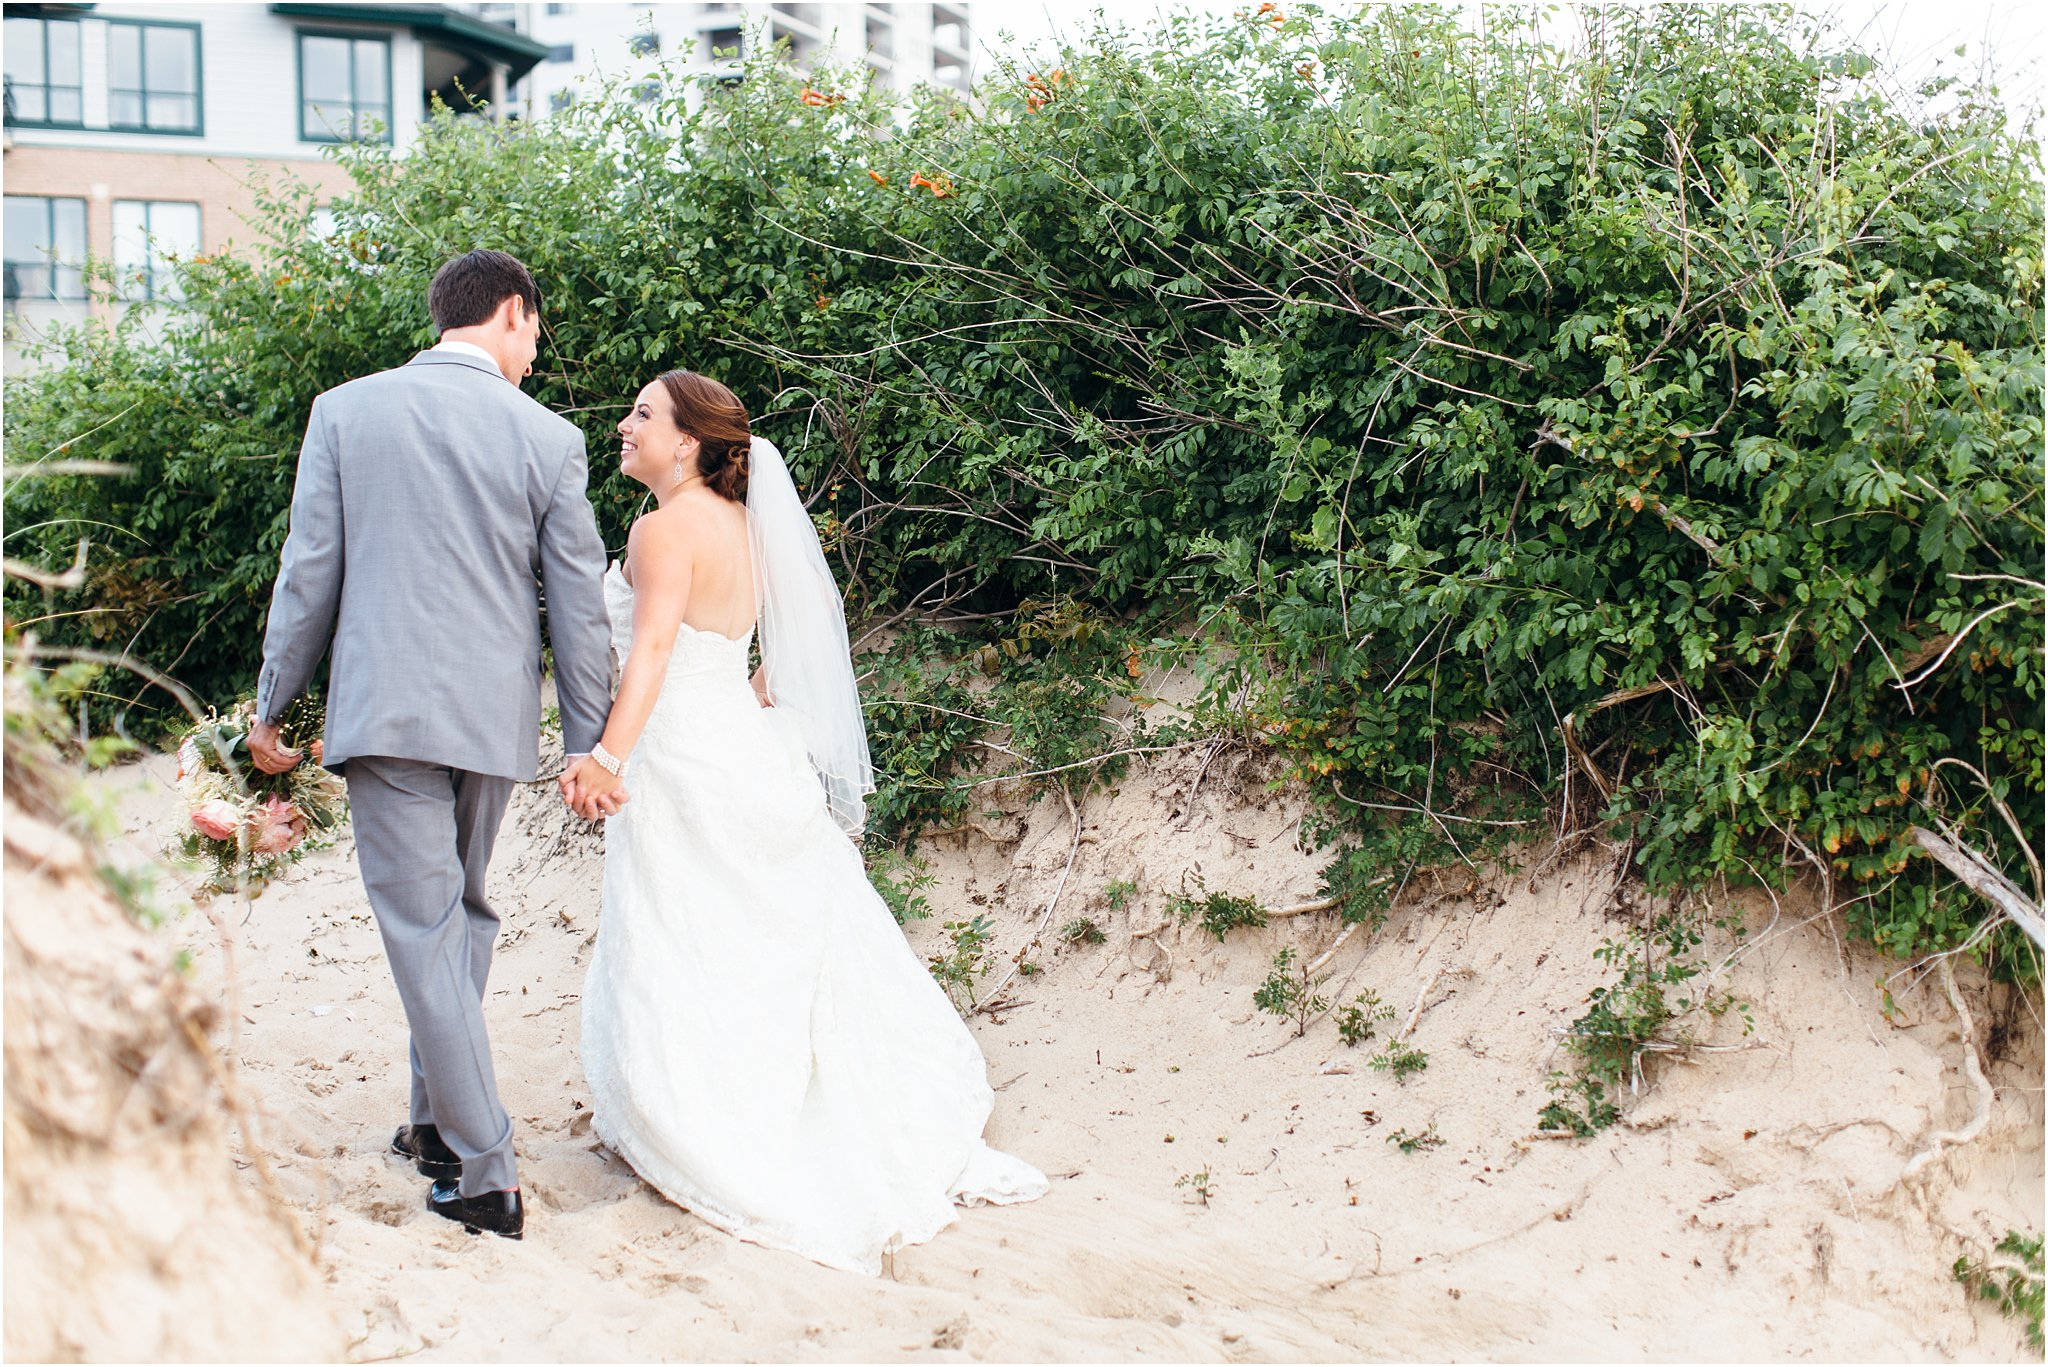 jessica_ryan_photography_wedding_photography_virginiabeach_virginia_candid_authentic_wedding_portraits_marina_shores_yacht_club_chesapeake_bay_1895